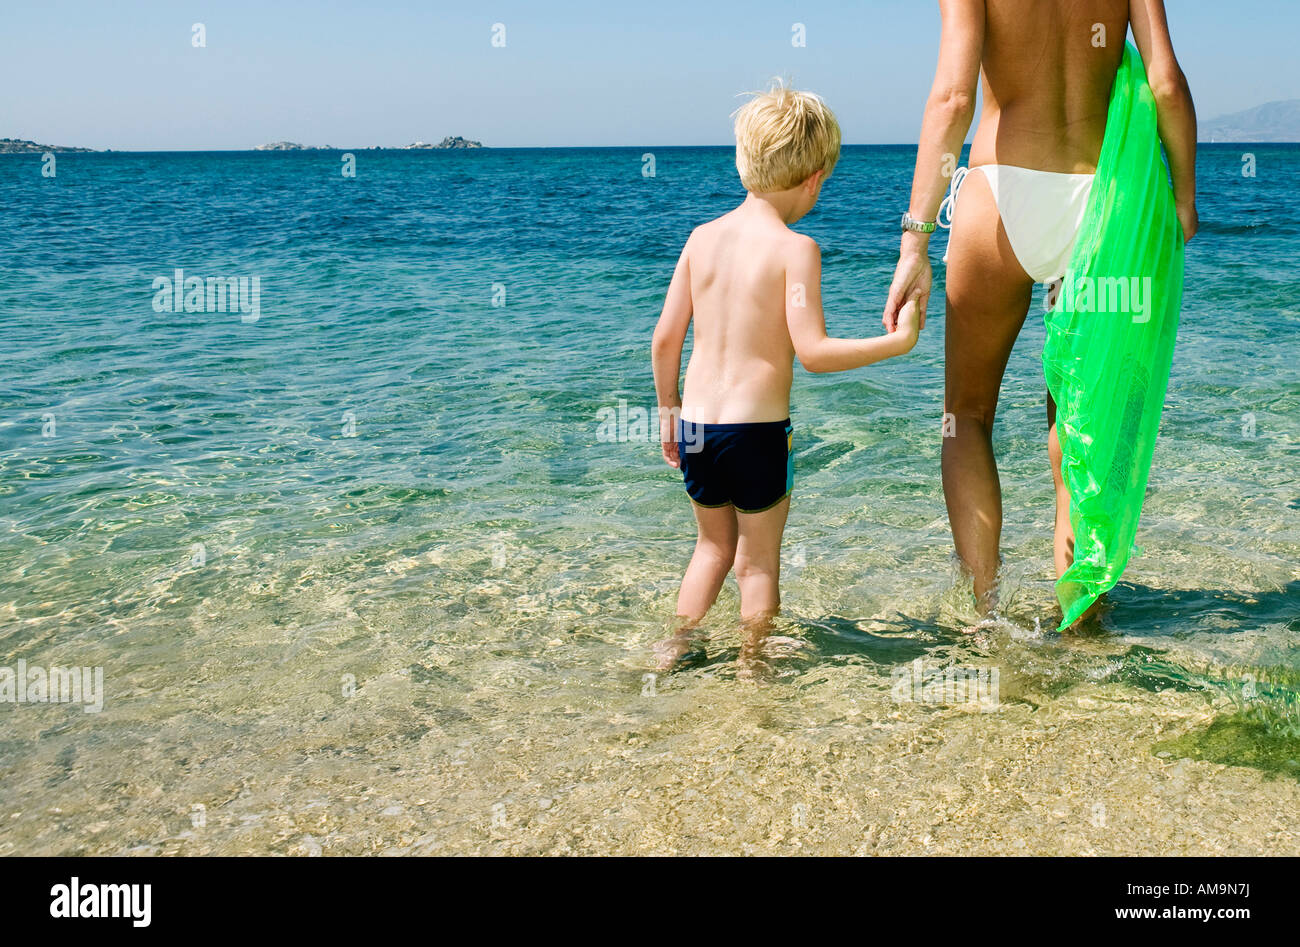 Woman holding inflatable raft with young boy on the beach. Stock Photo